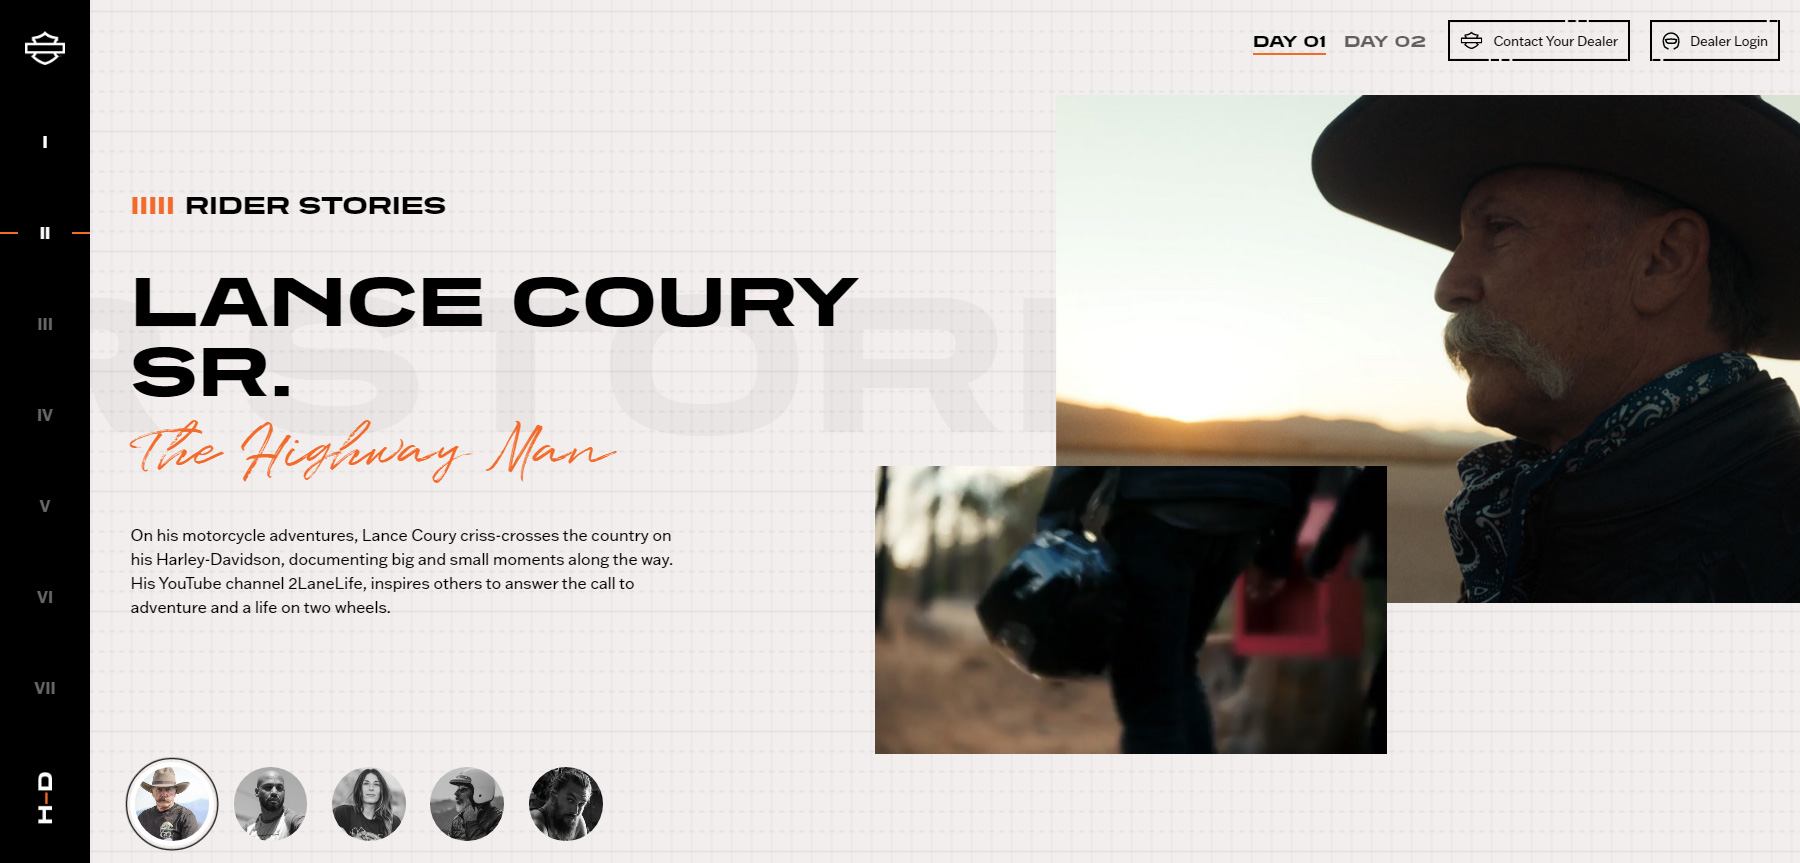 Harley-Davidson: H-D 21 Microsite - Website of the Day